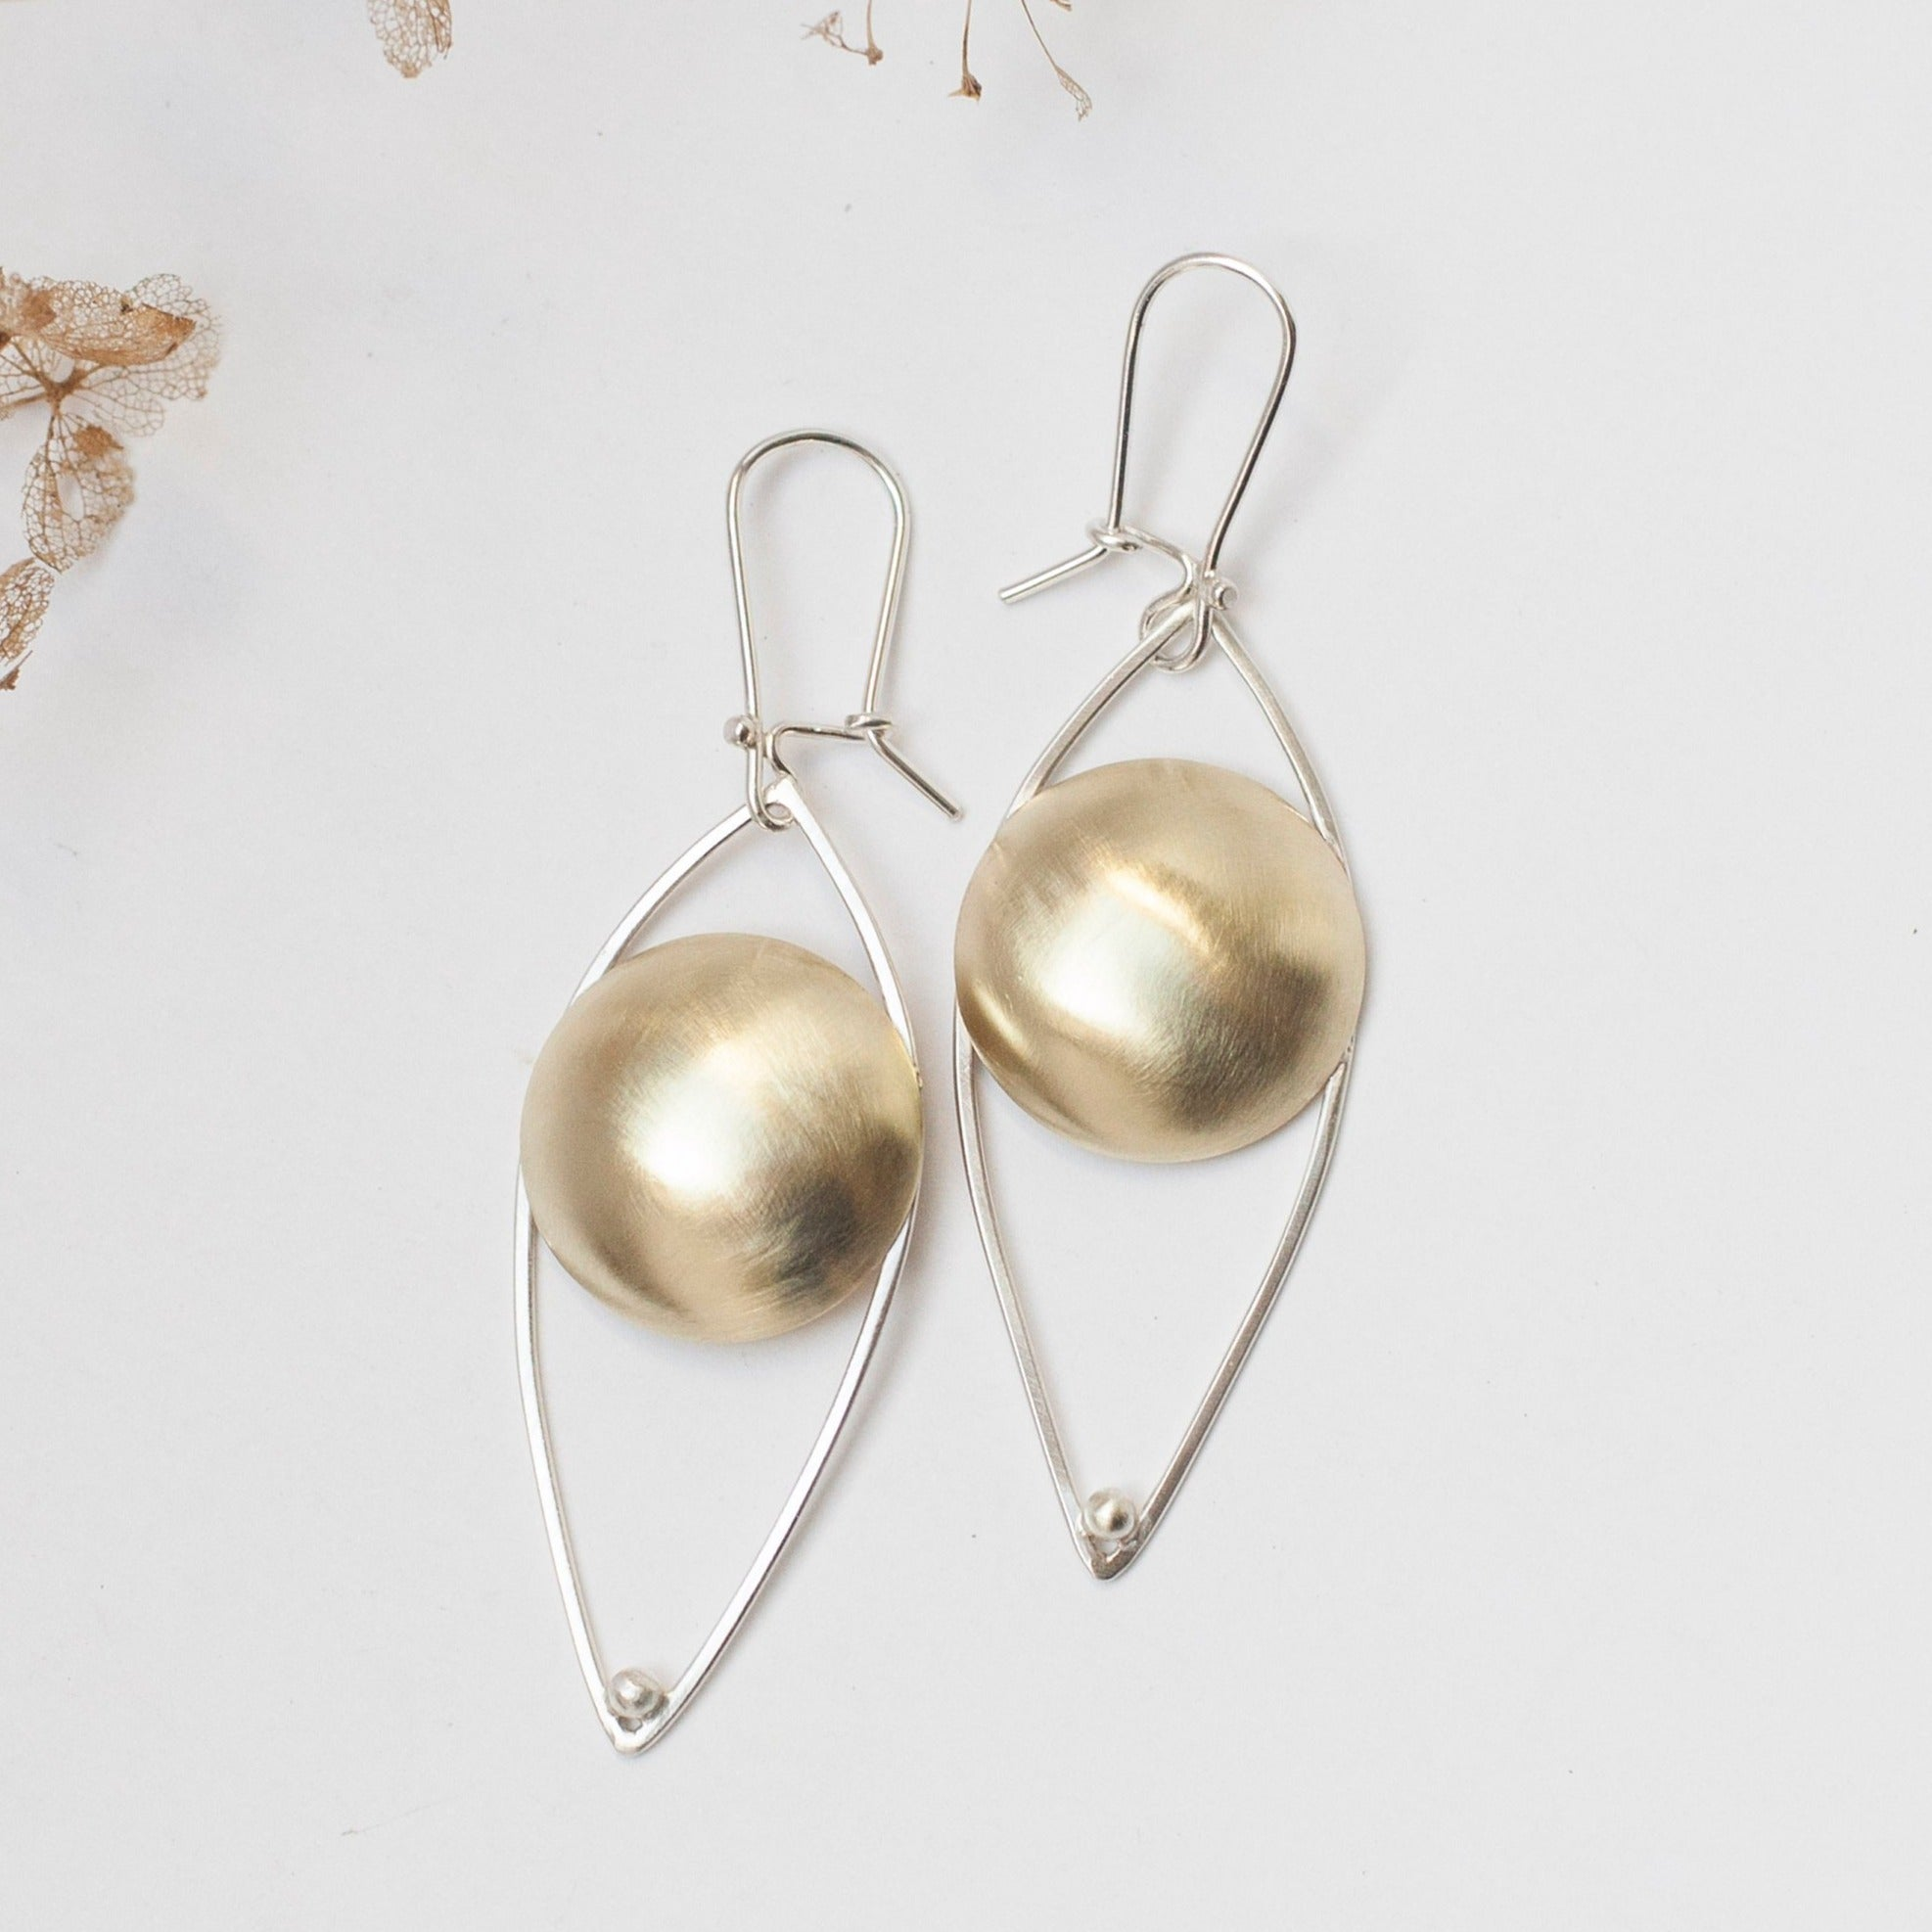 Mixed metals earrings ~ brass circle on silver structure